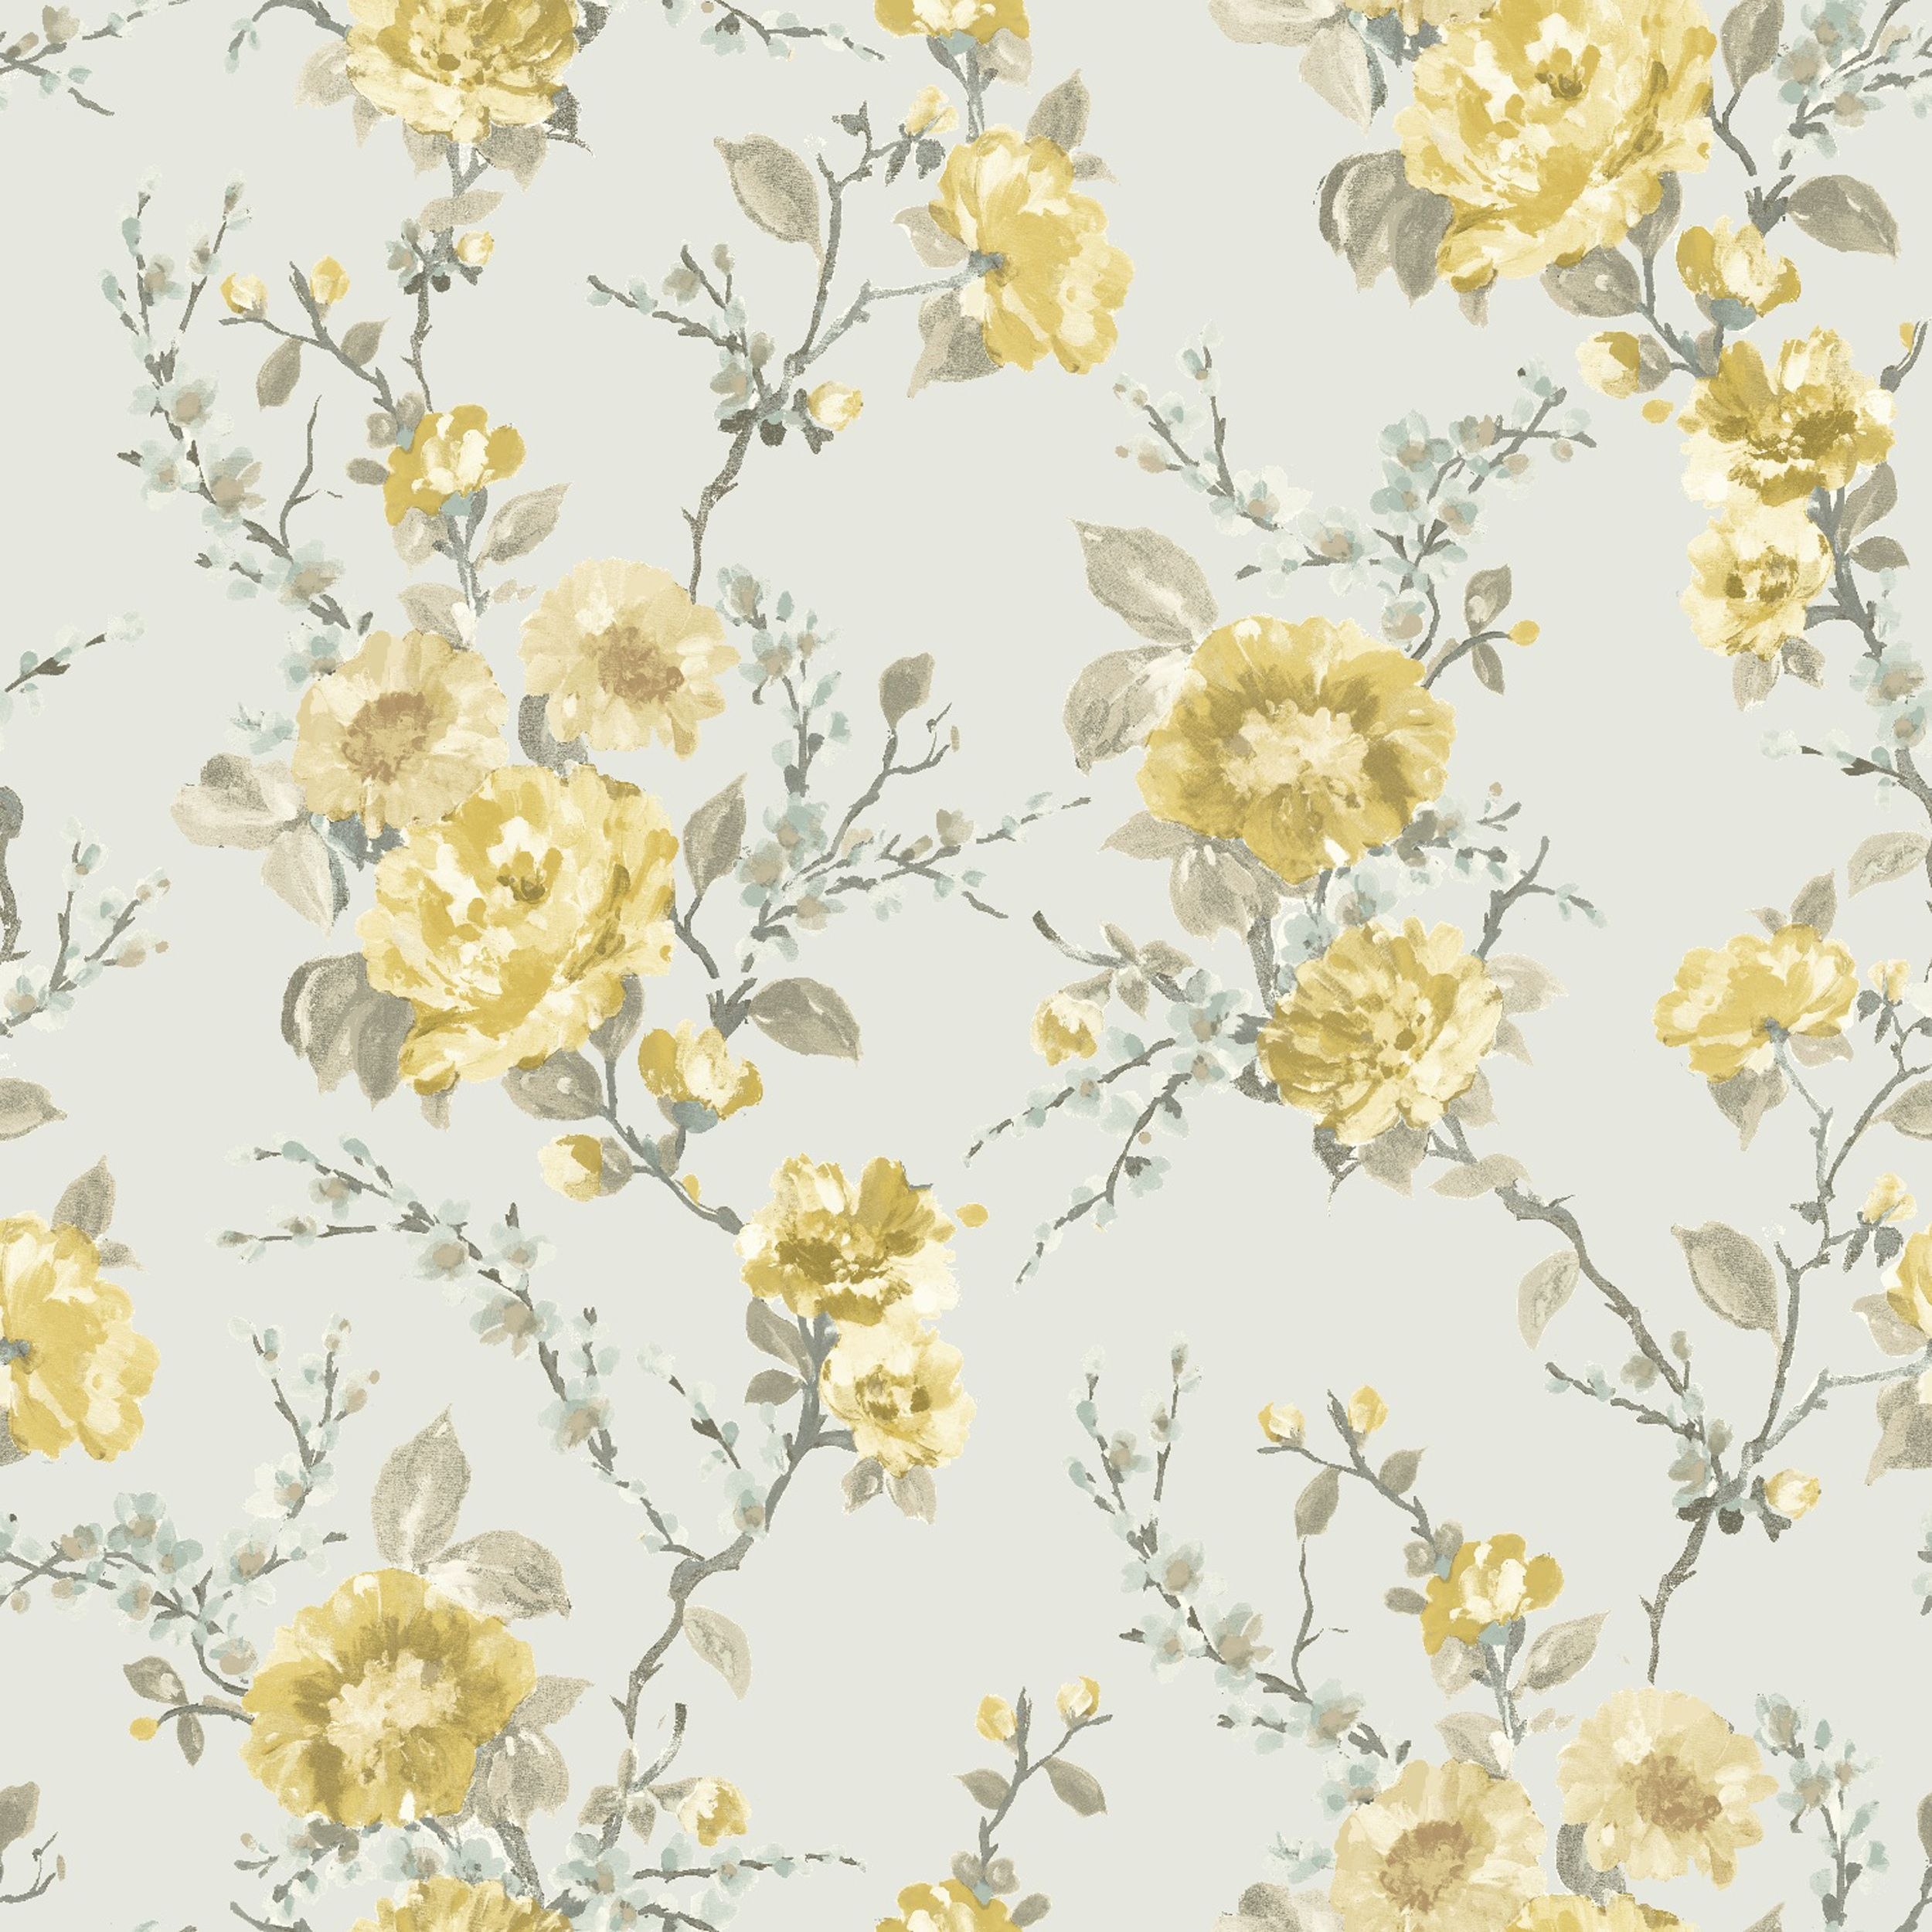 K2 Lucy Duck Egg Yellow Floral Wallpaper Egg Yellow Floral